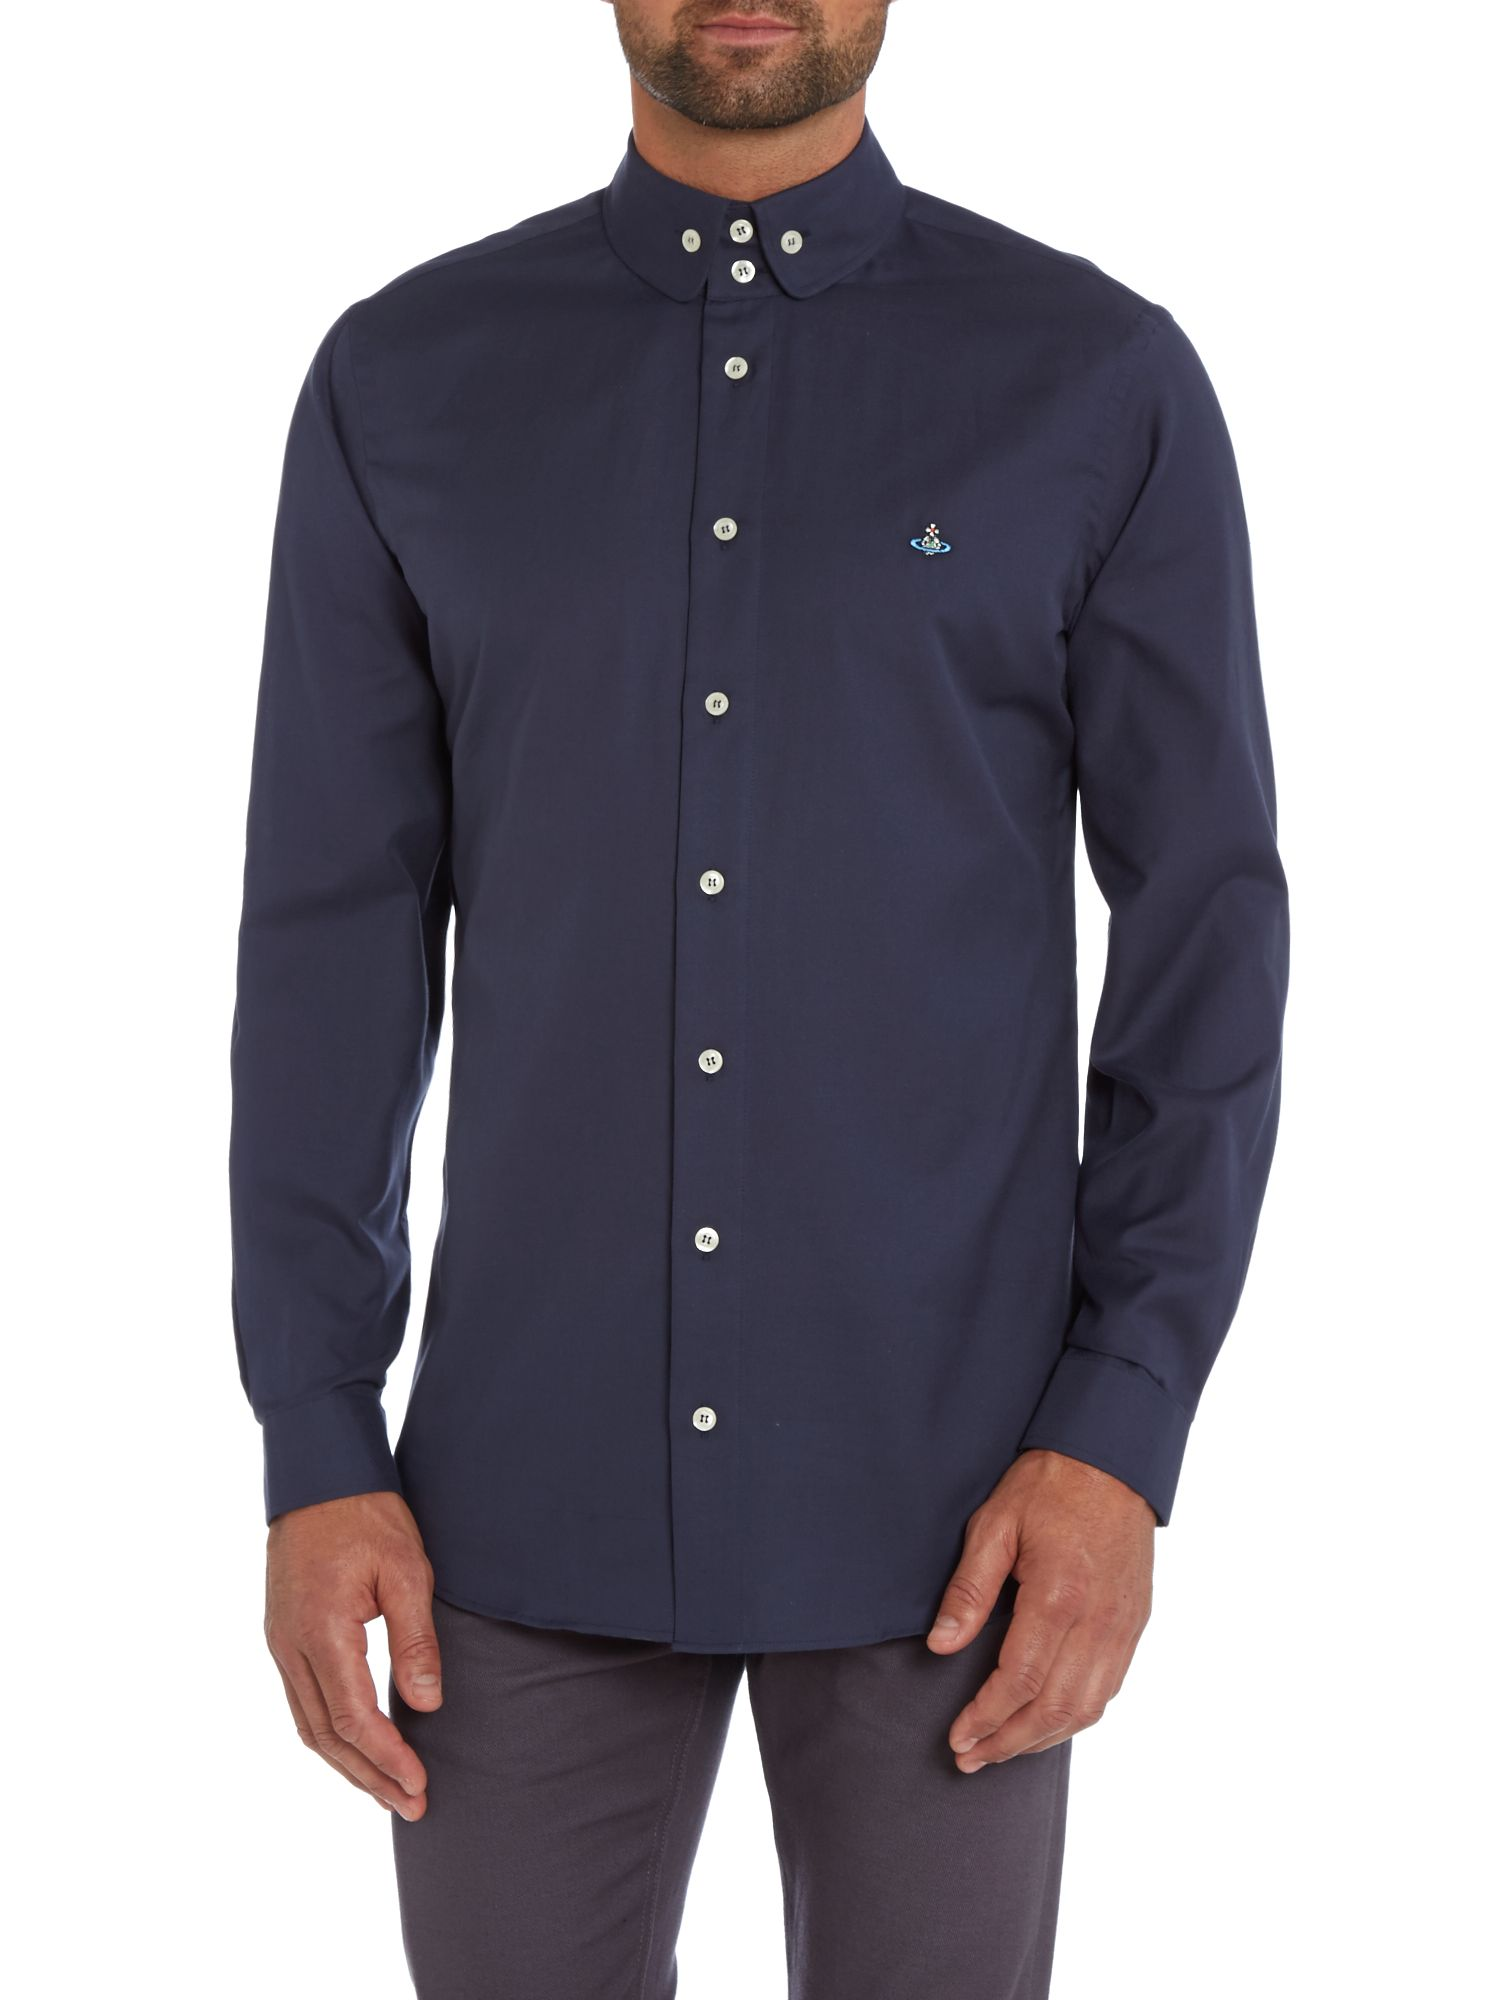 Oxford logo shirt